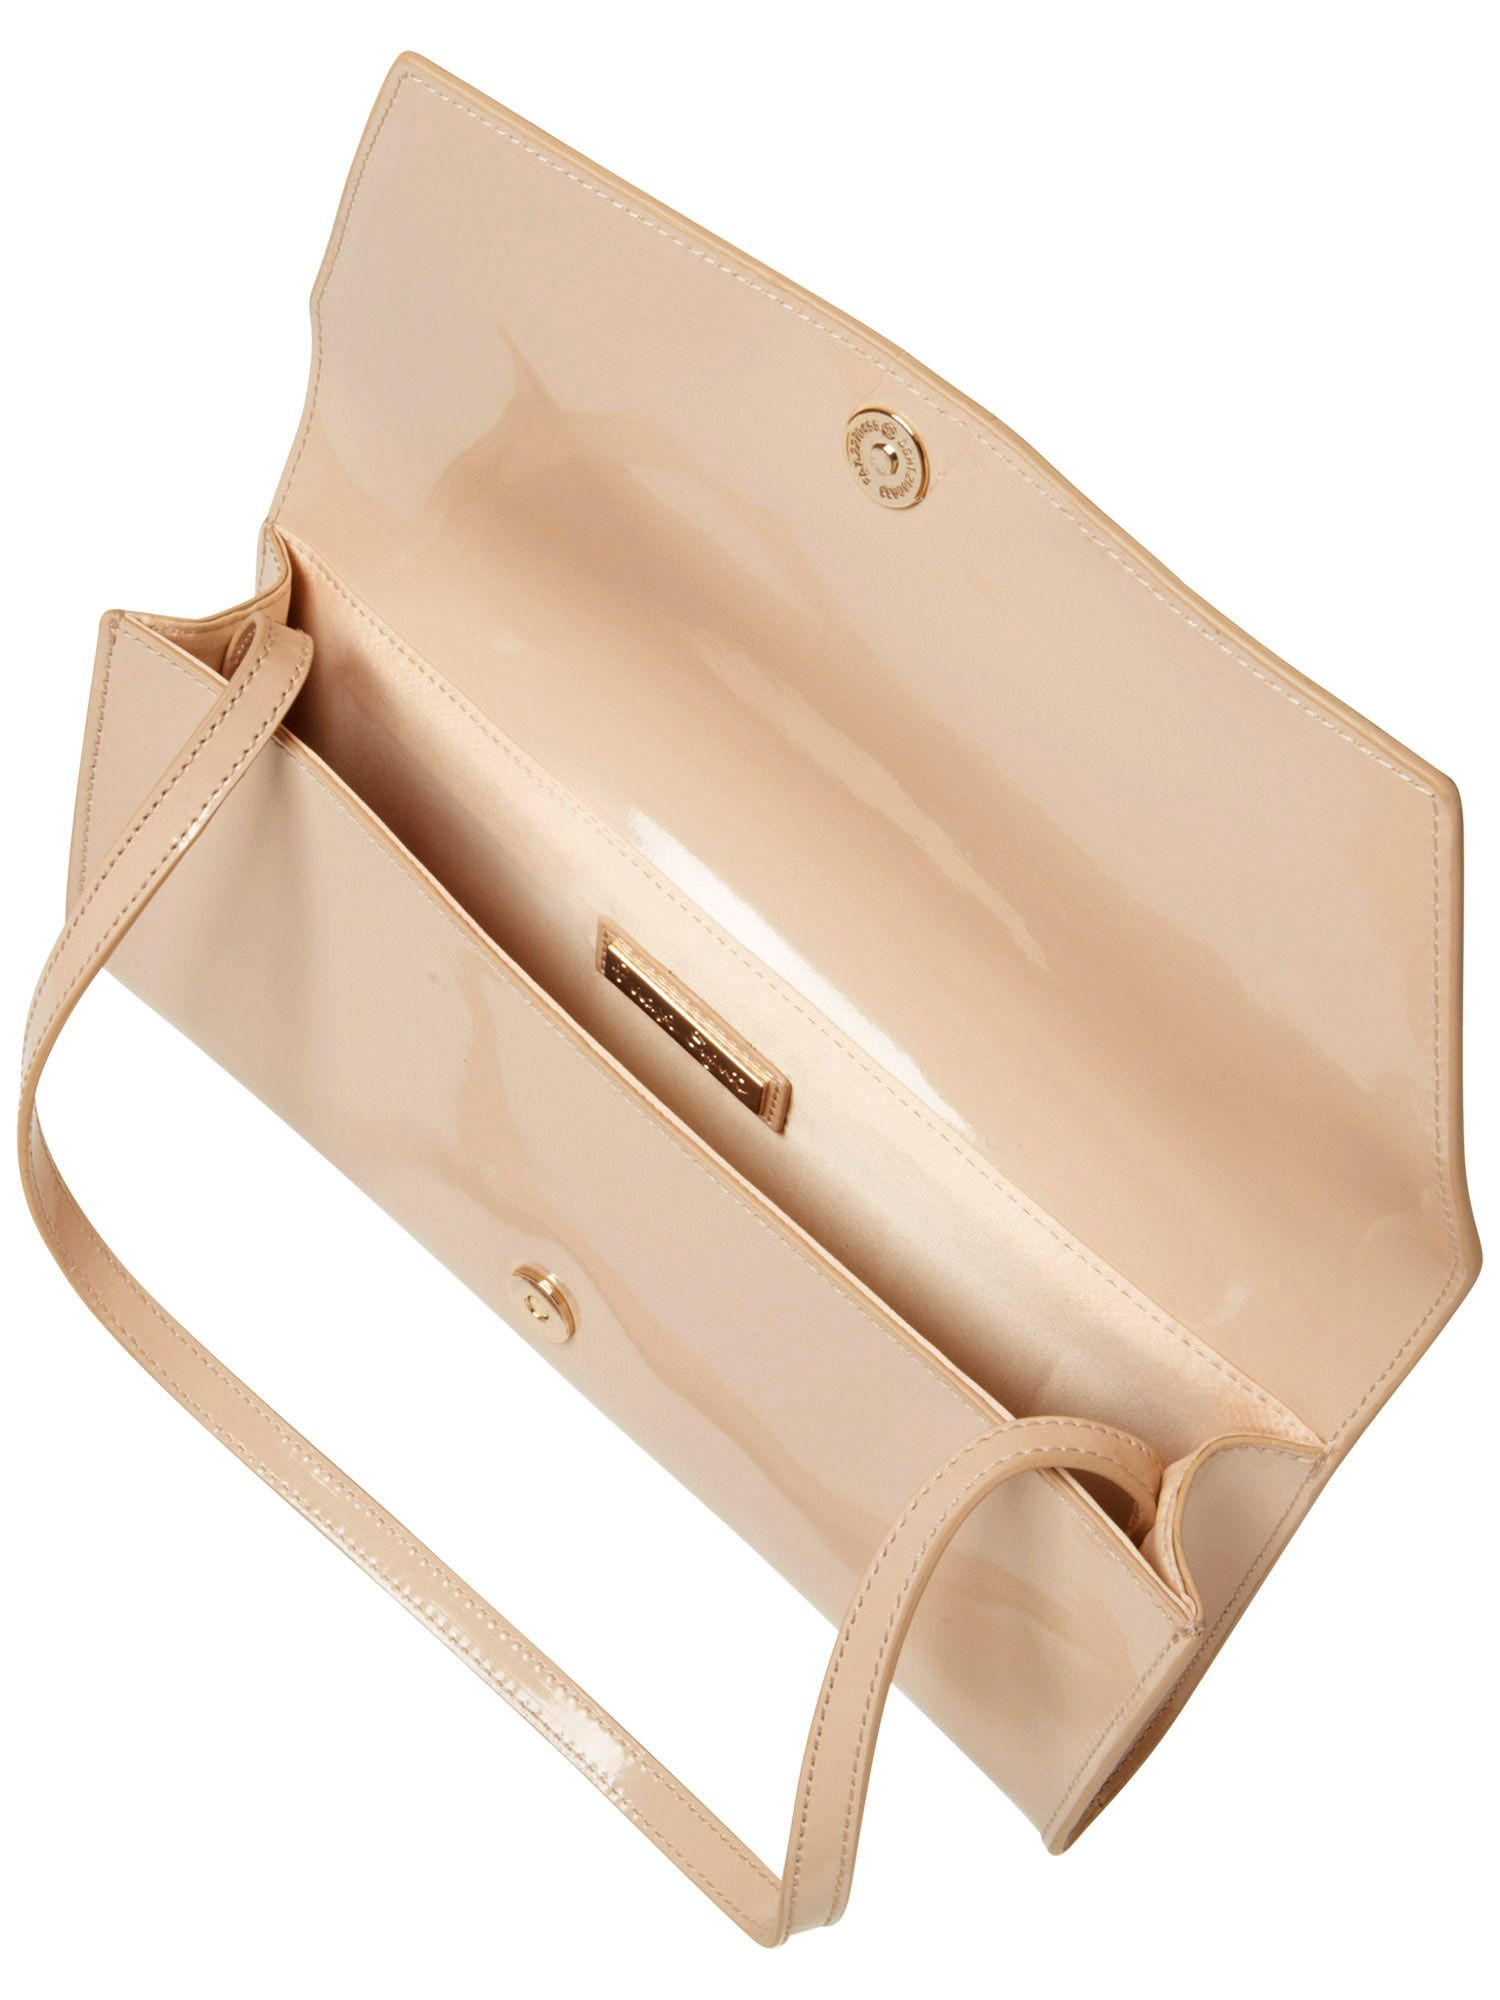 Suzie patent leather clutch bag